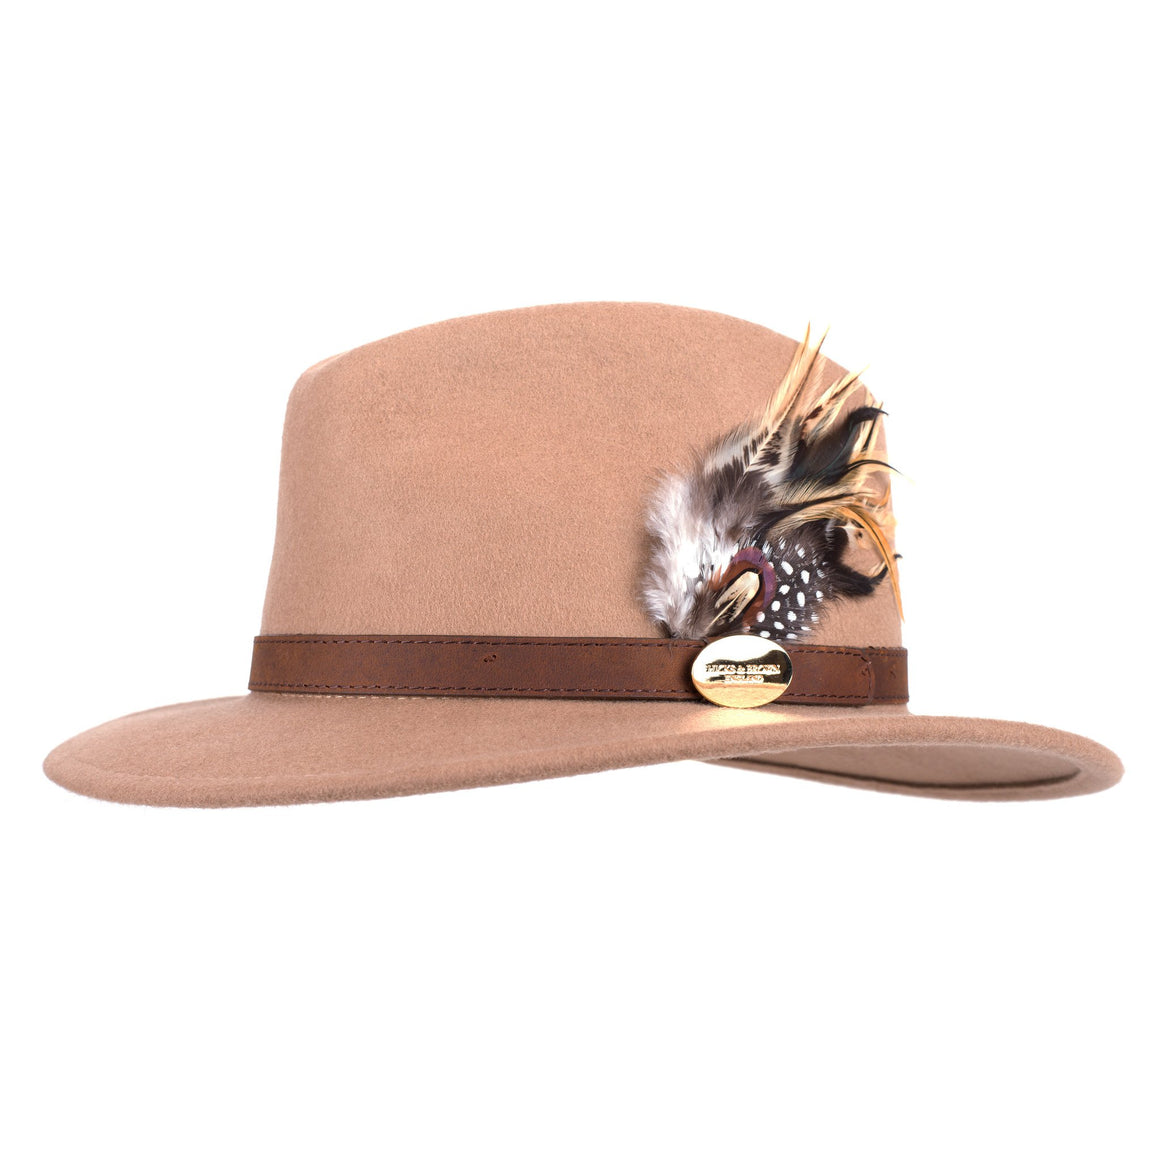 Hicks & Brown 'The Suffolk' Fedora in Camel (Guinea and Pheasant Feather)